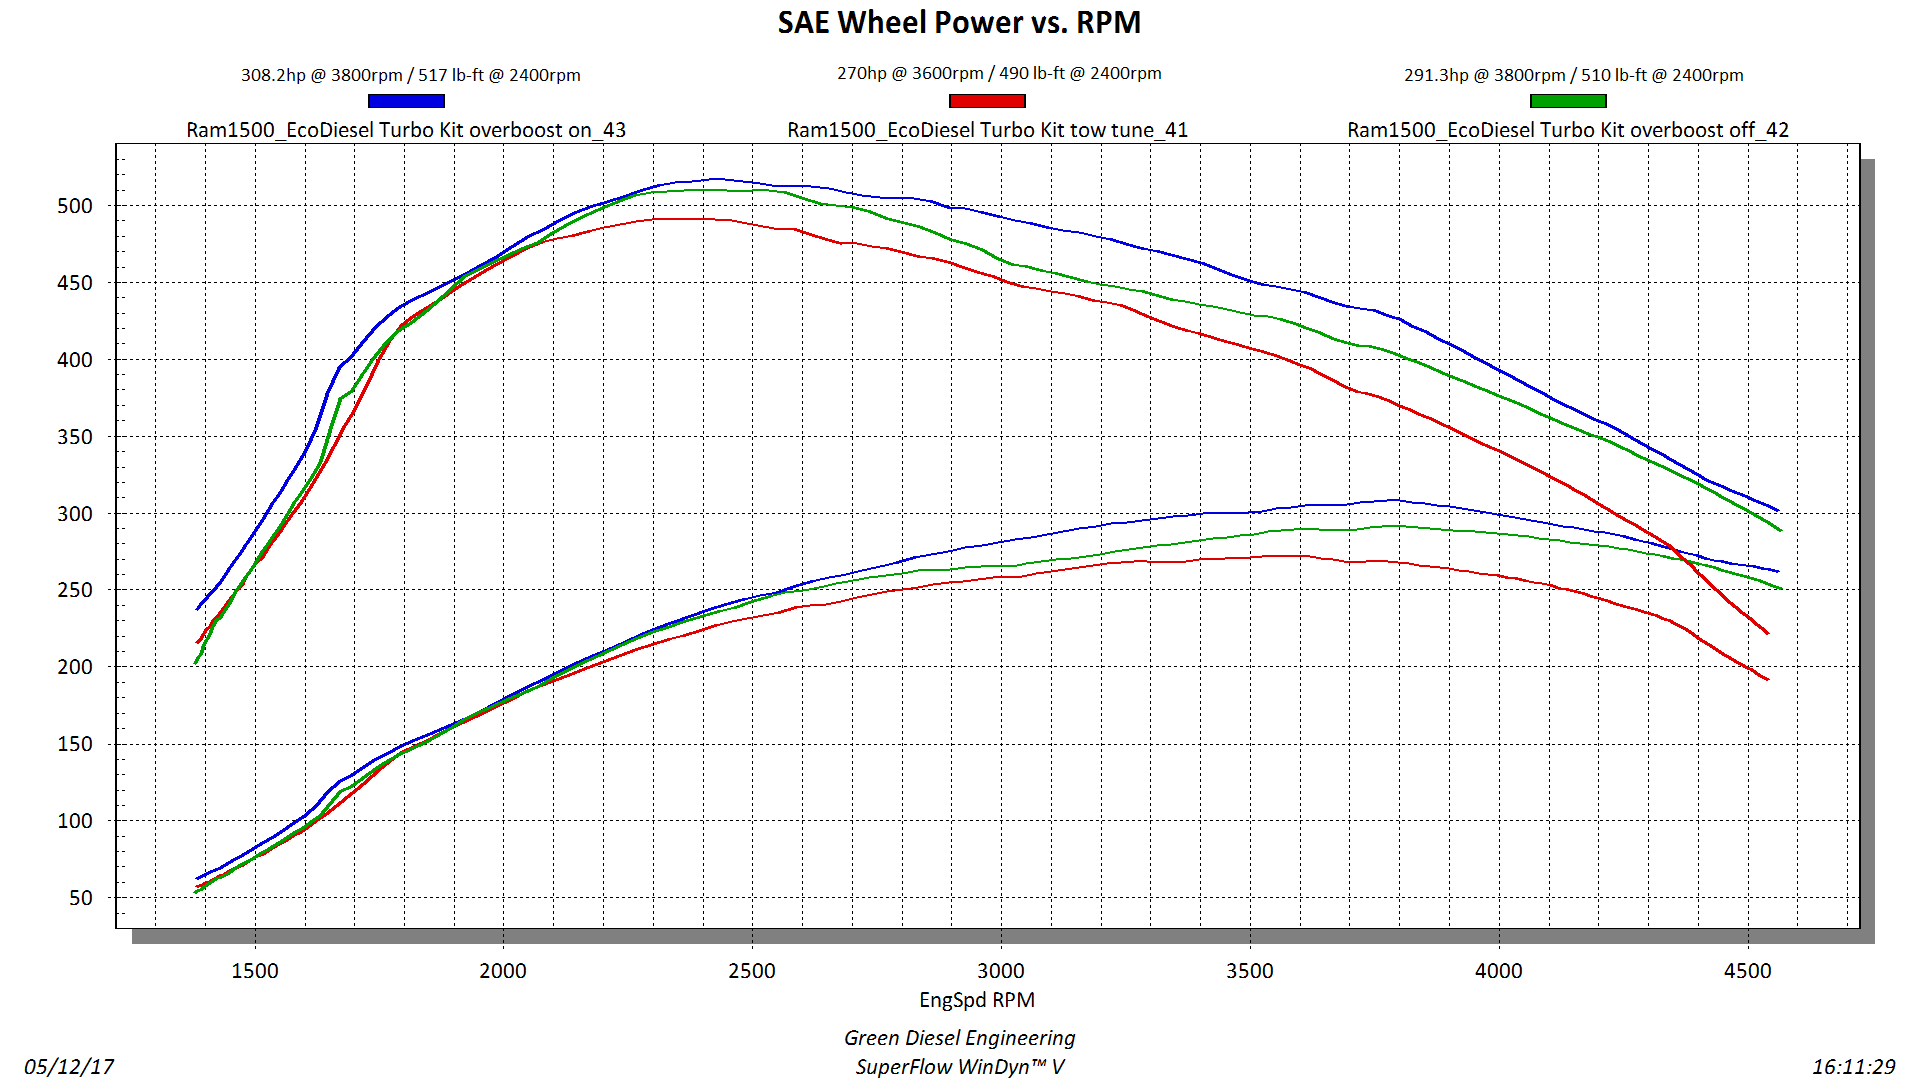 NEW GDE Turbo kit power curves-gde-full-load-curve-final_v5-12may2017.png